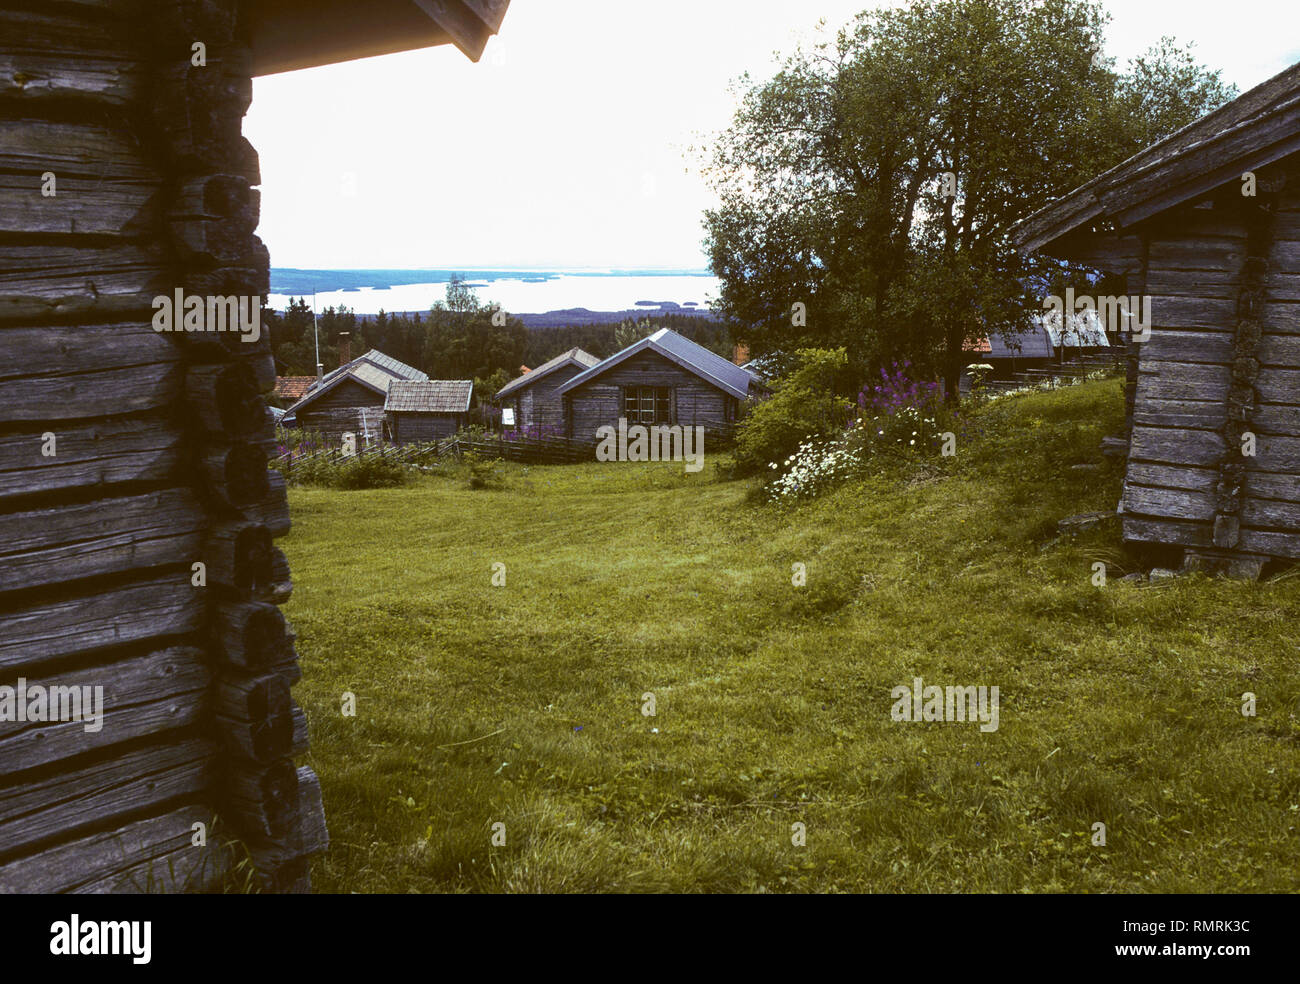 FRYKÅSEN chalet in Dalarna Sweden a summer posture of animals - Stock Image